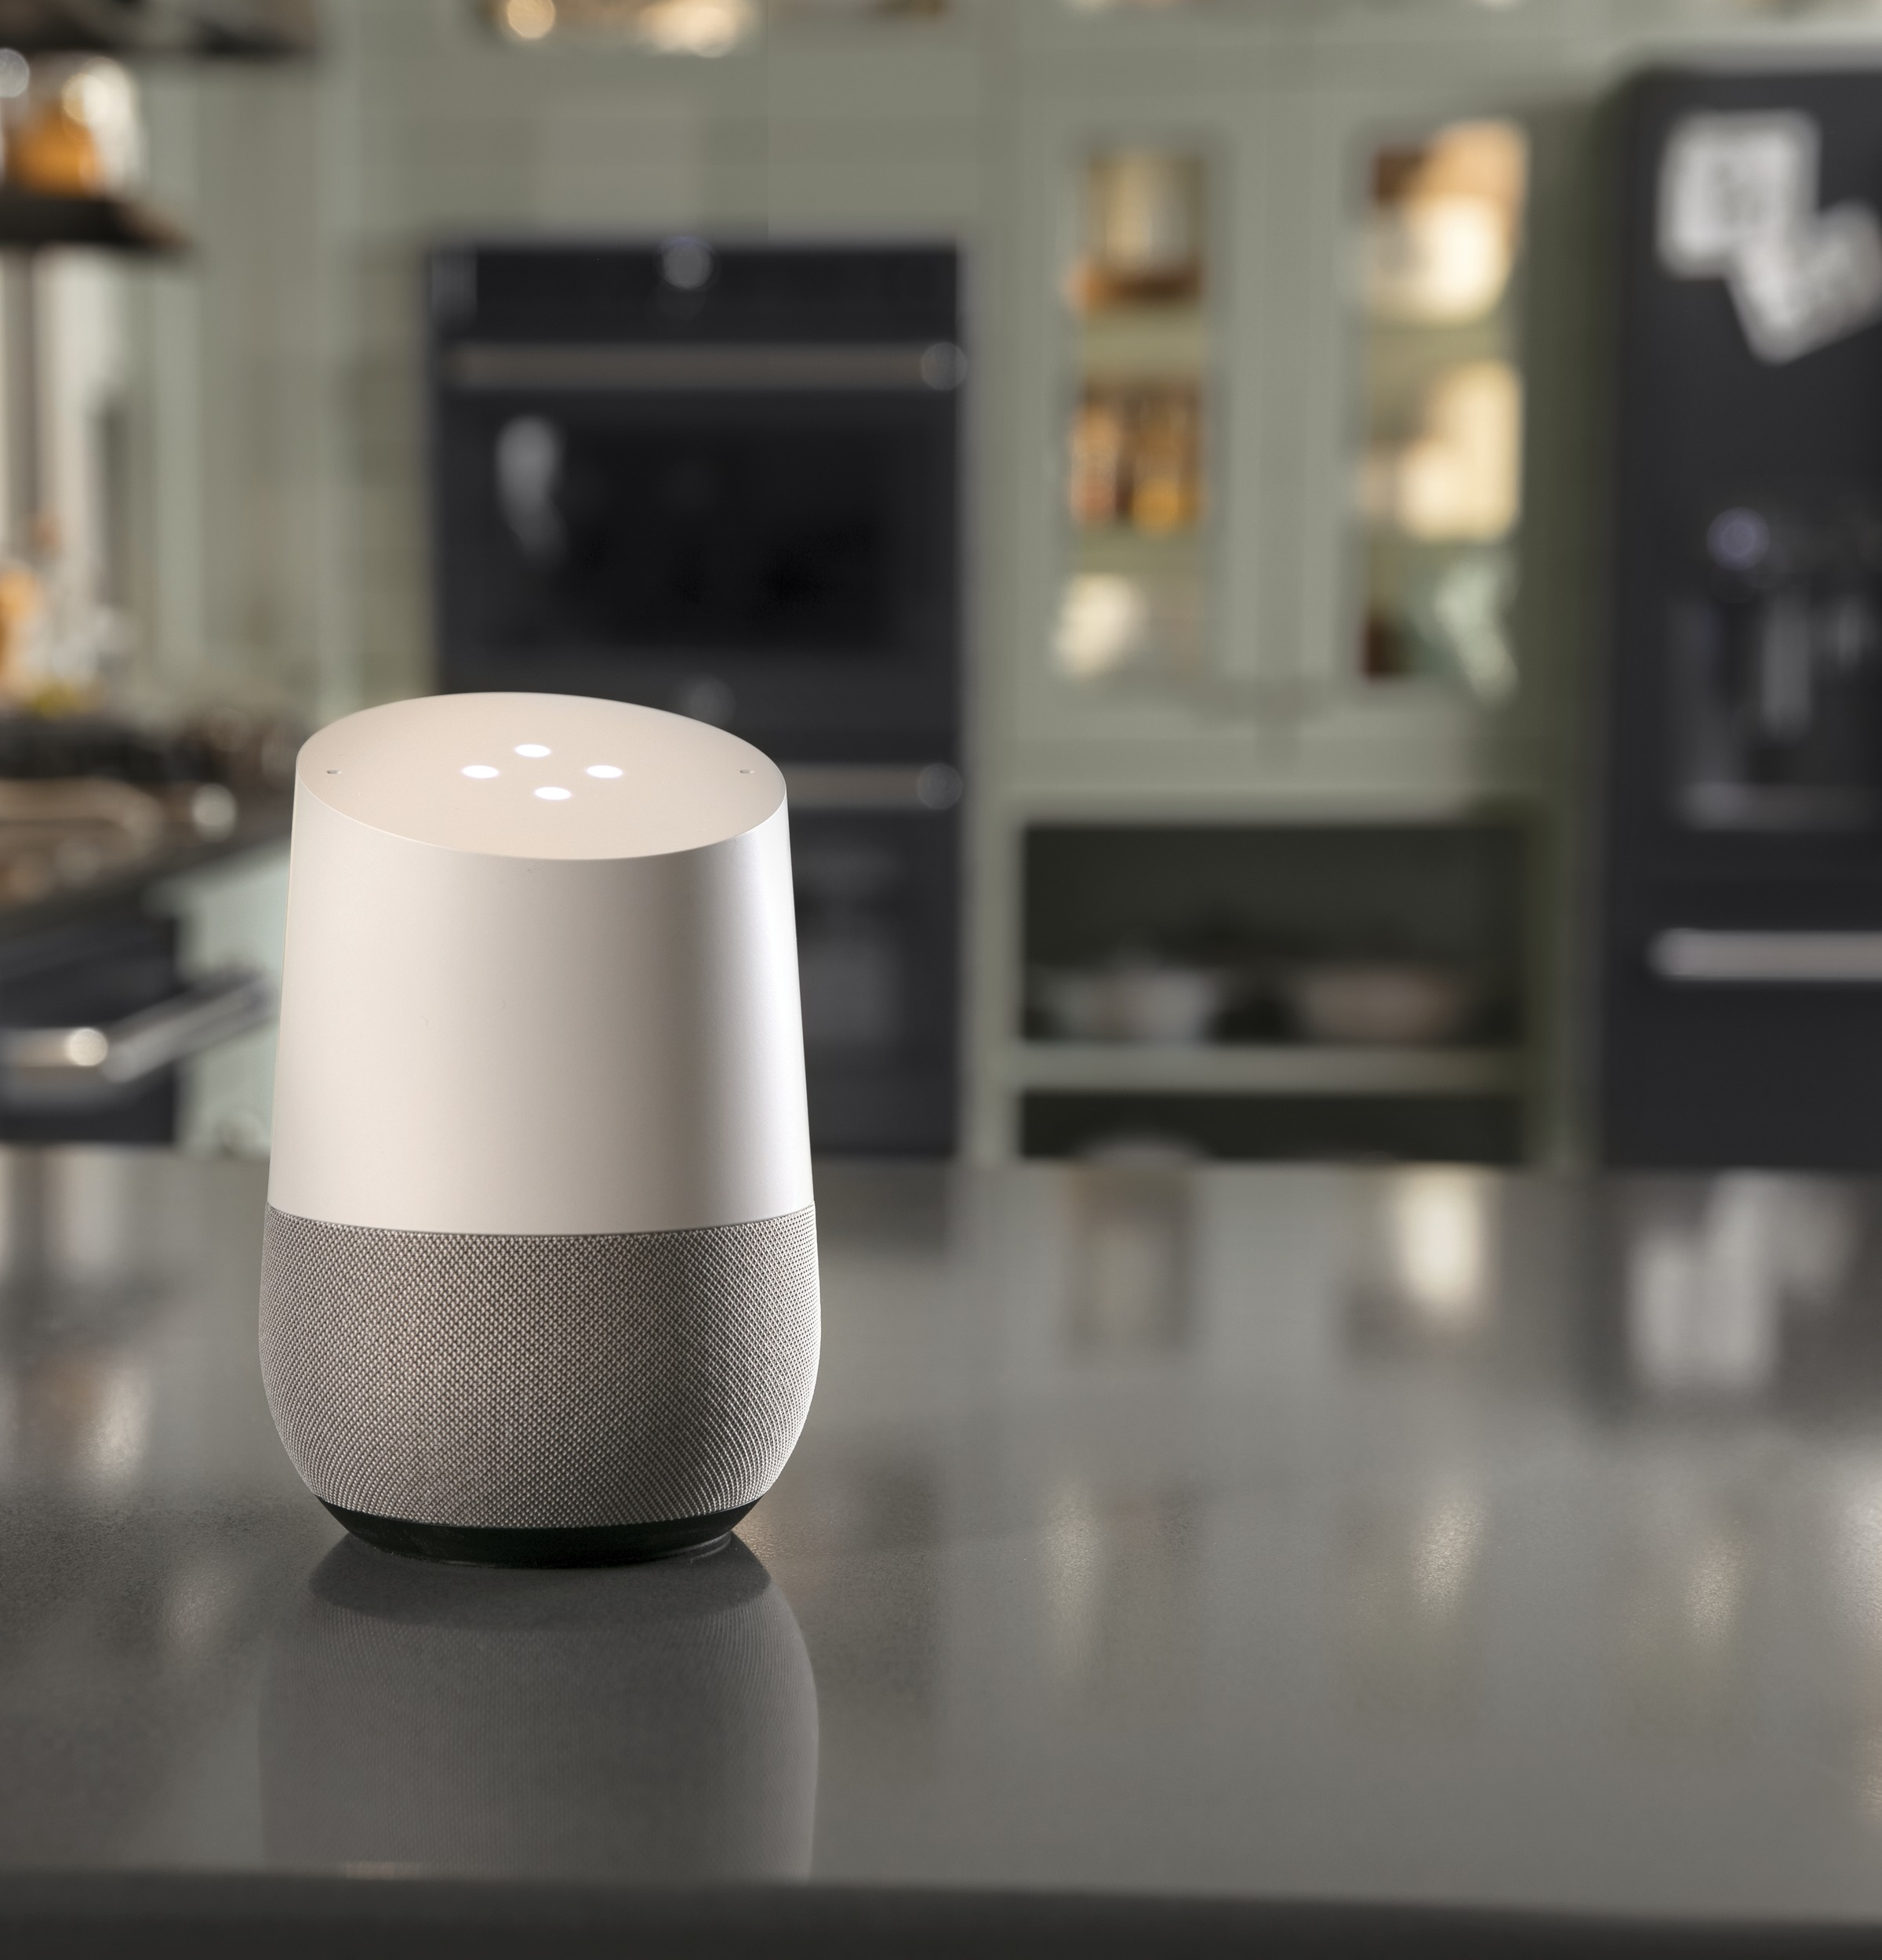 Voice Activated Appliance Features